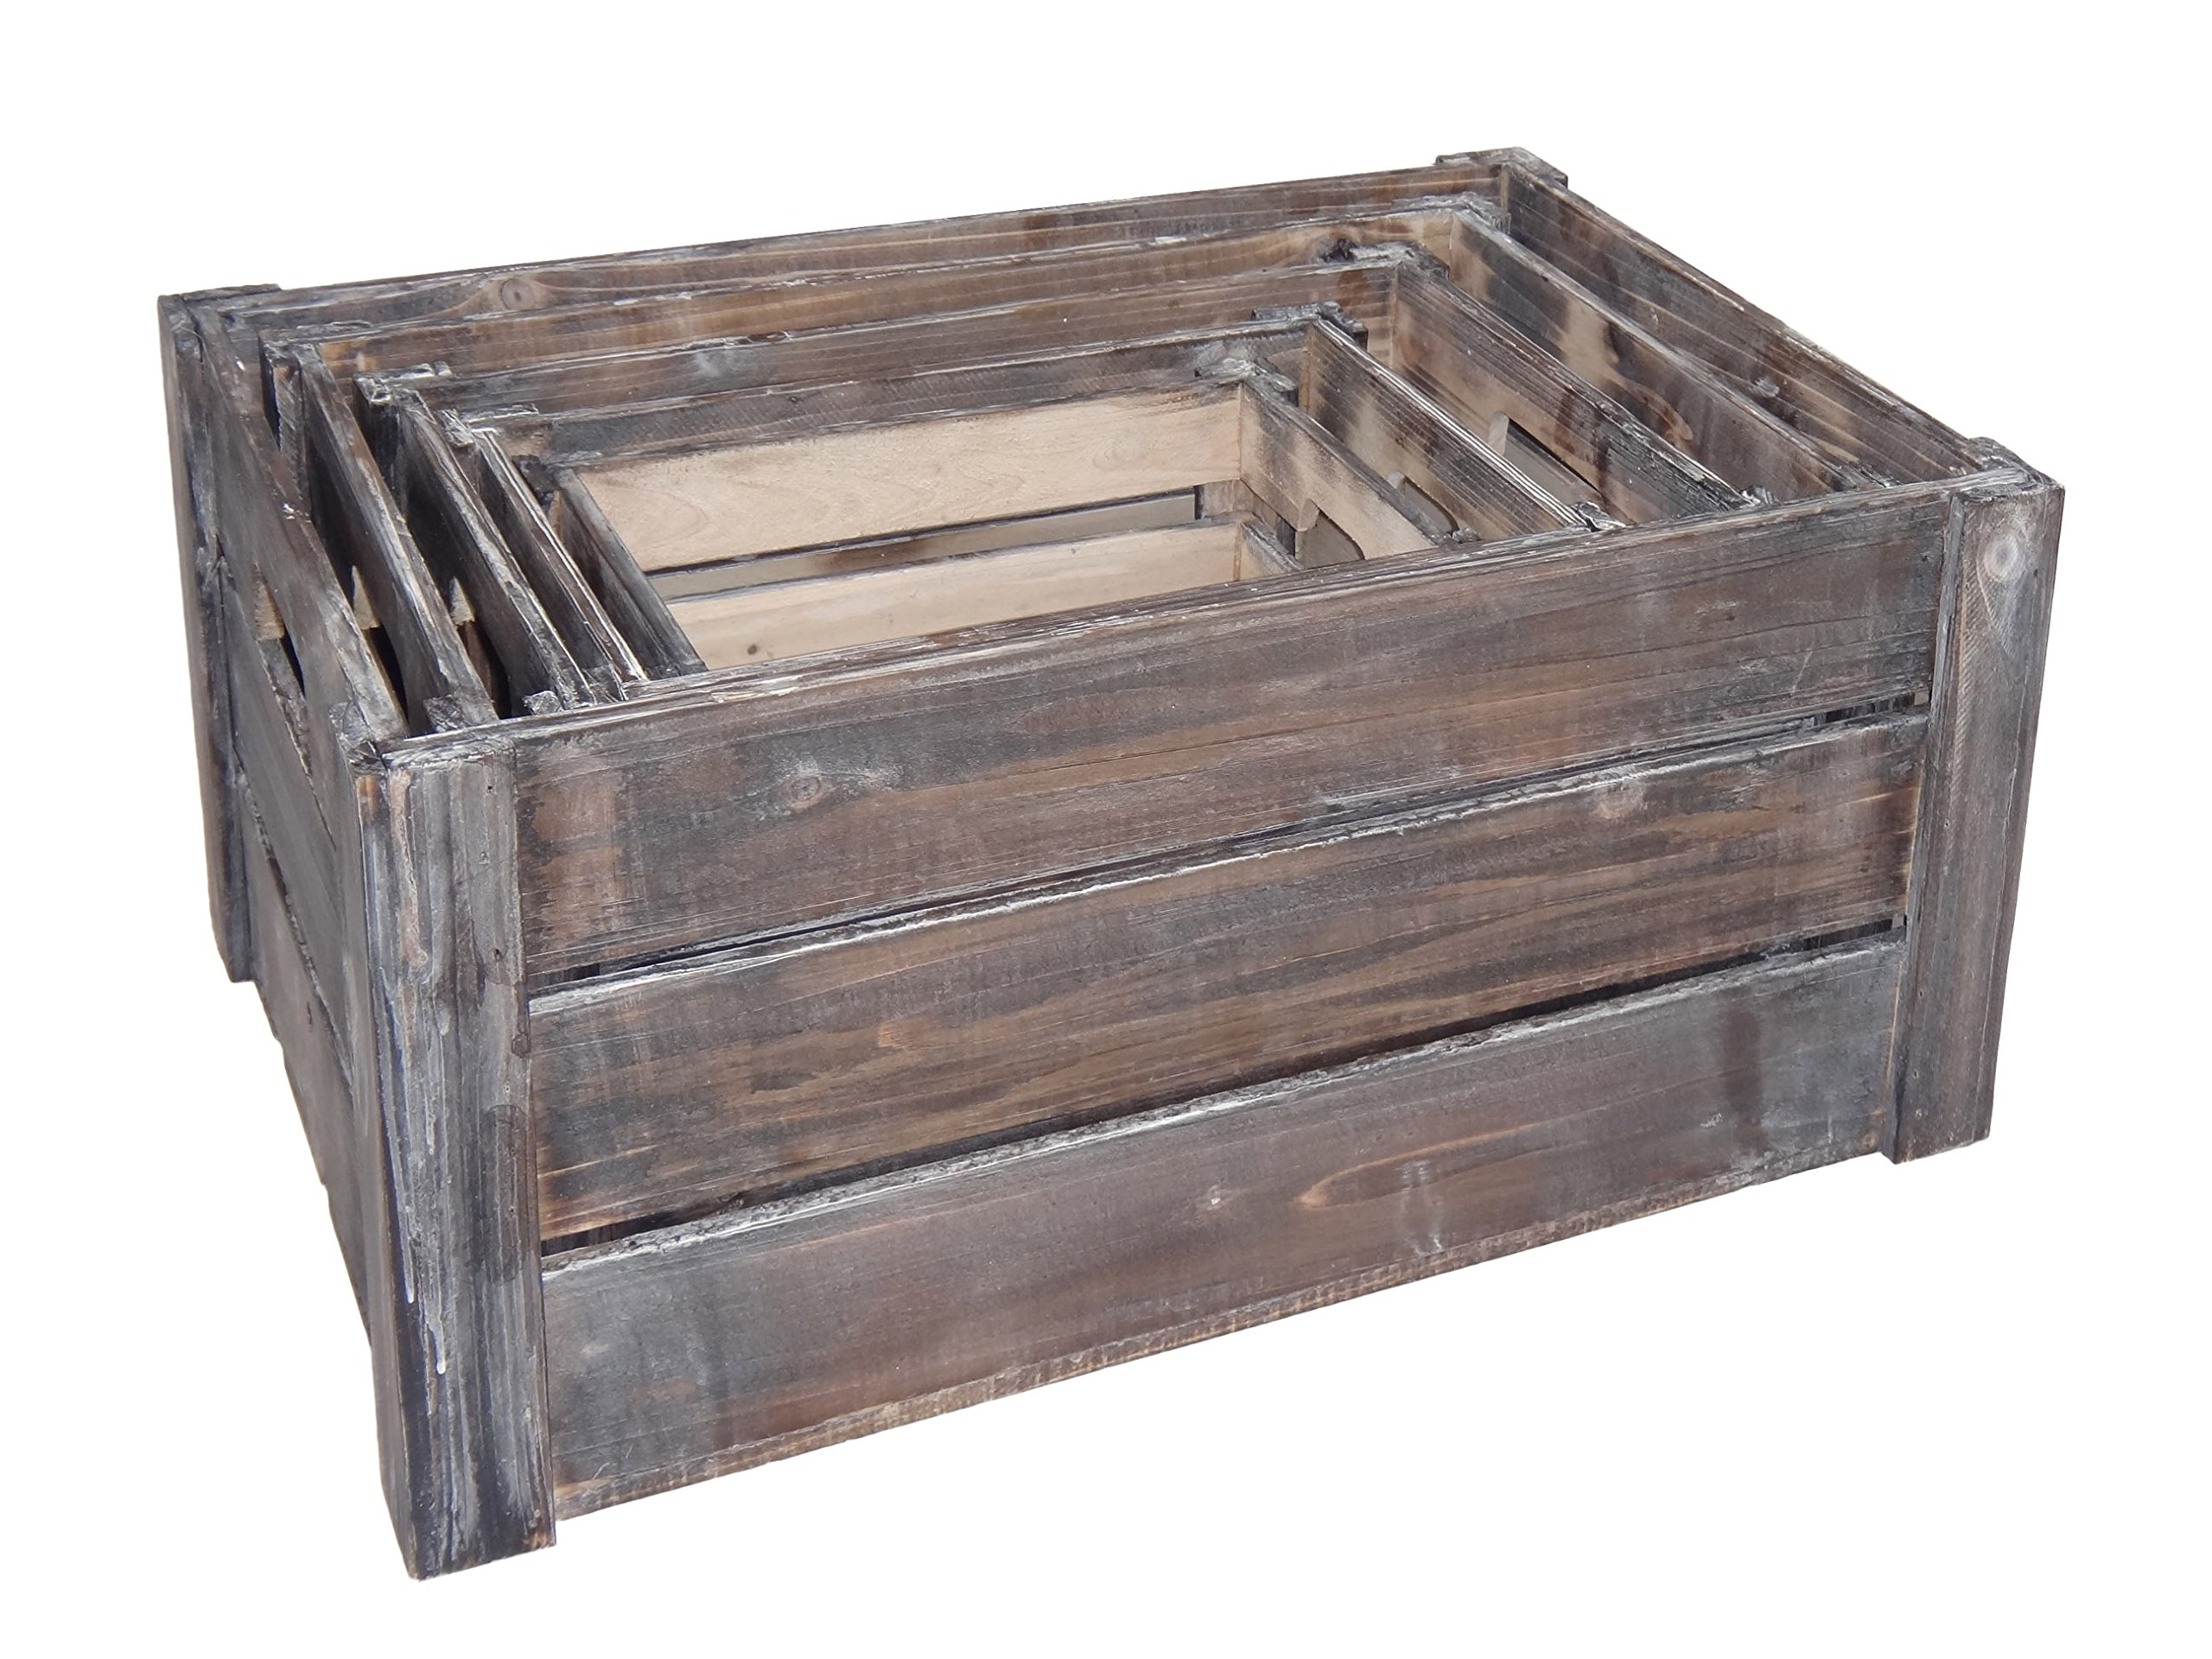 Cheung's FP-3697-5 Nested Wood Slat Crate| Set of 5